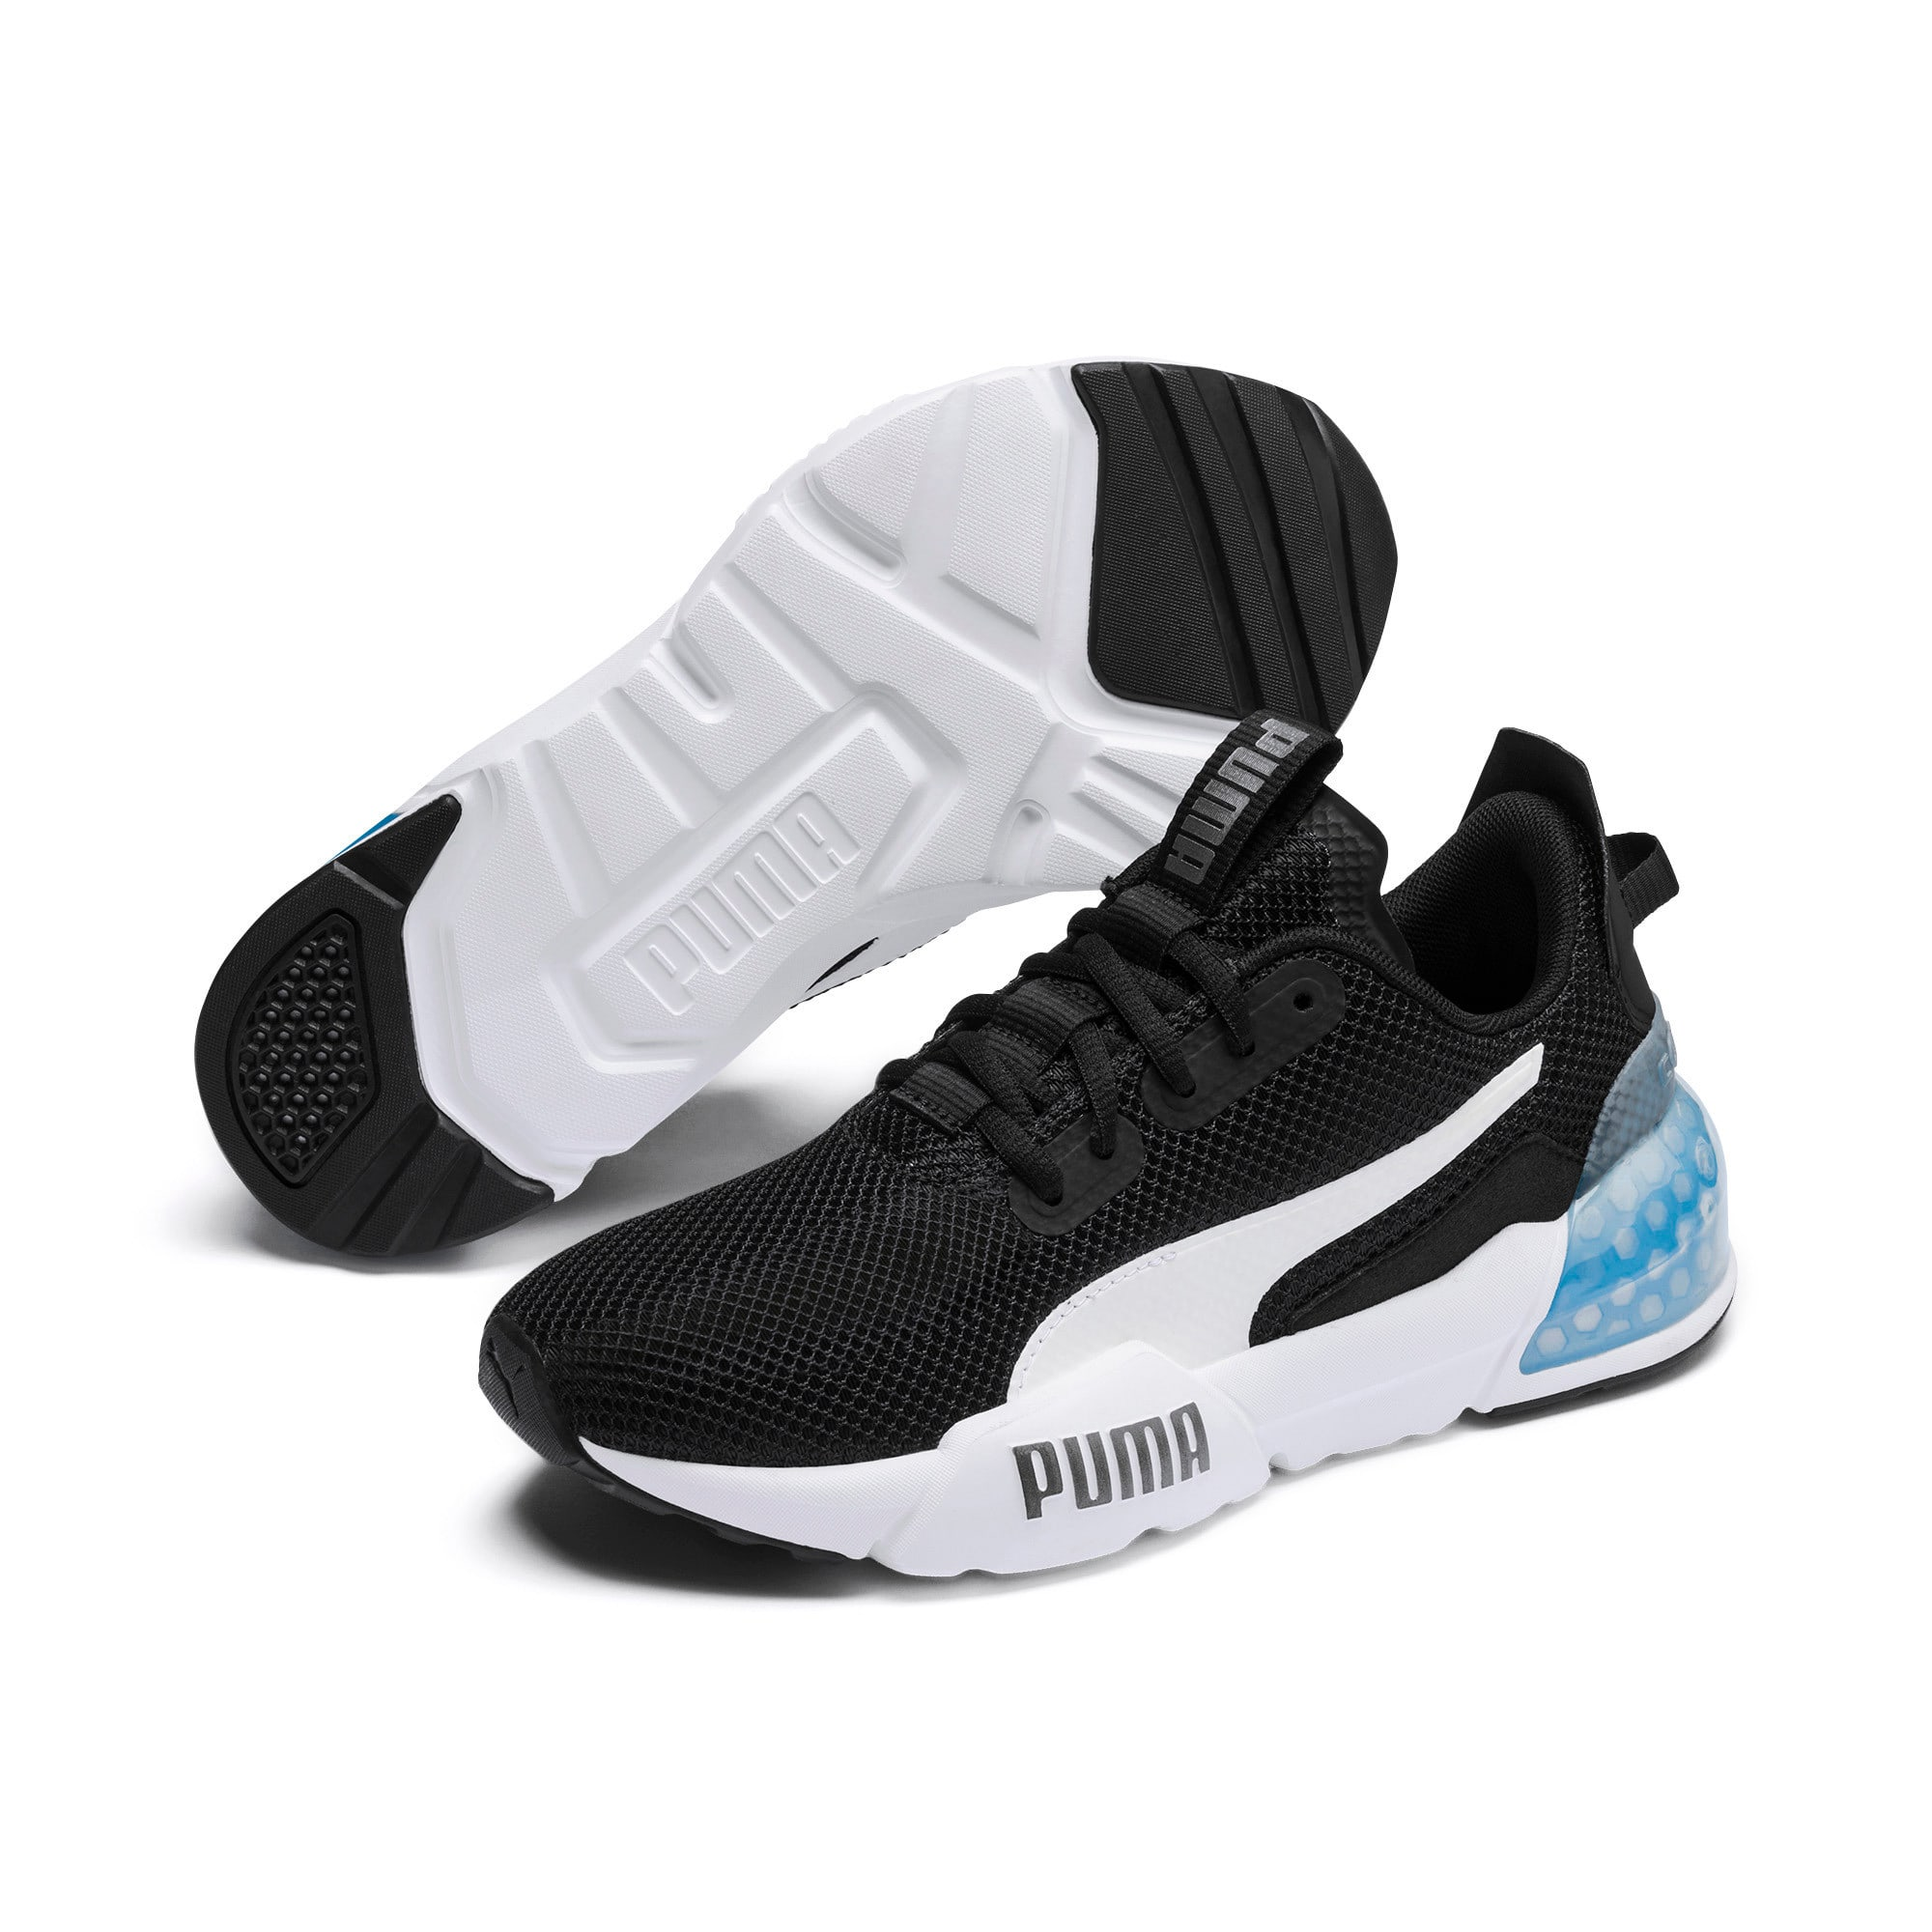 Thumbnail 3 of CELL Phase Women's Training Shoes, Puma Black-Puma Silver, medium